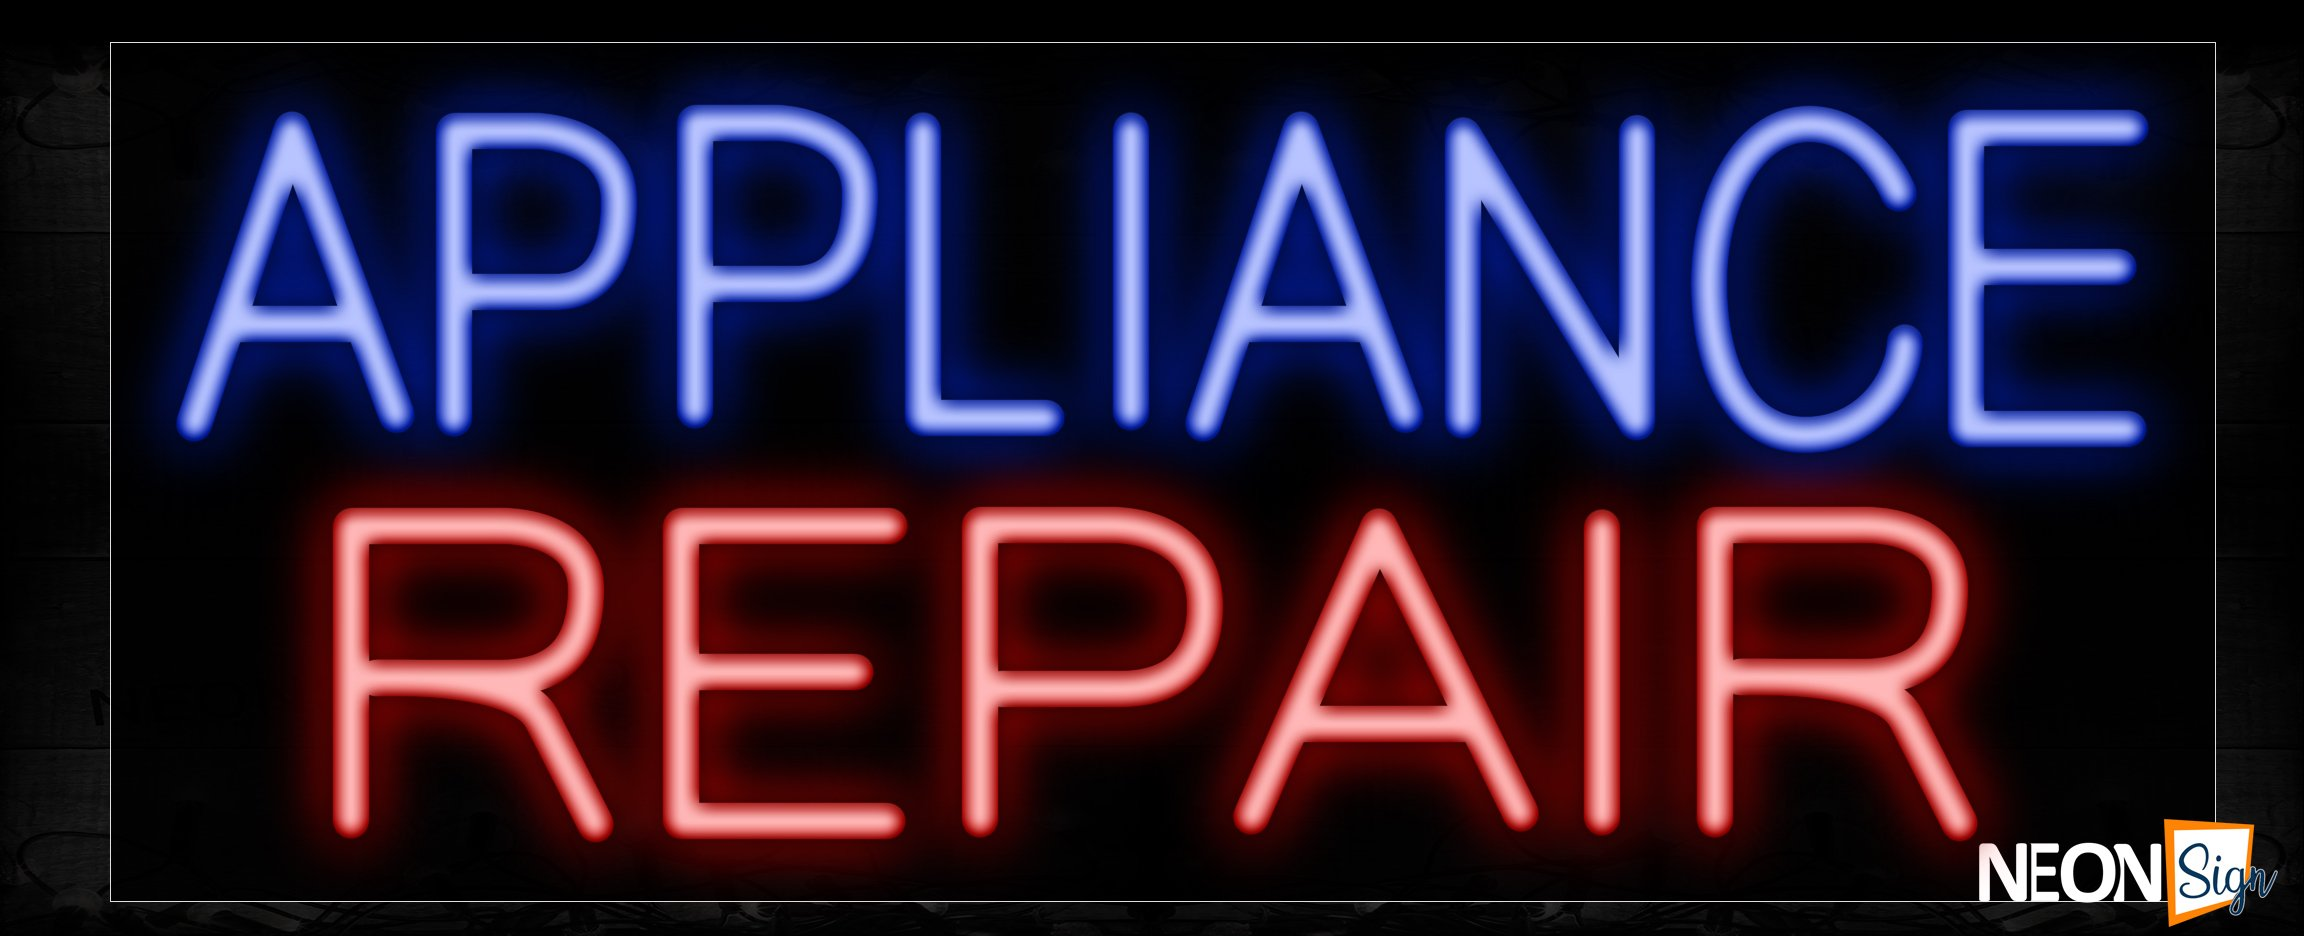 Image of 11350 Appliance Repair 2 Lines And All Caps Text Traditional Neon_13x32 Black Backing